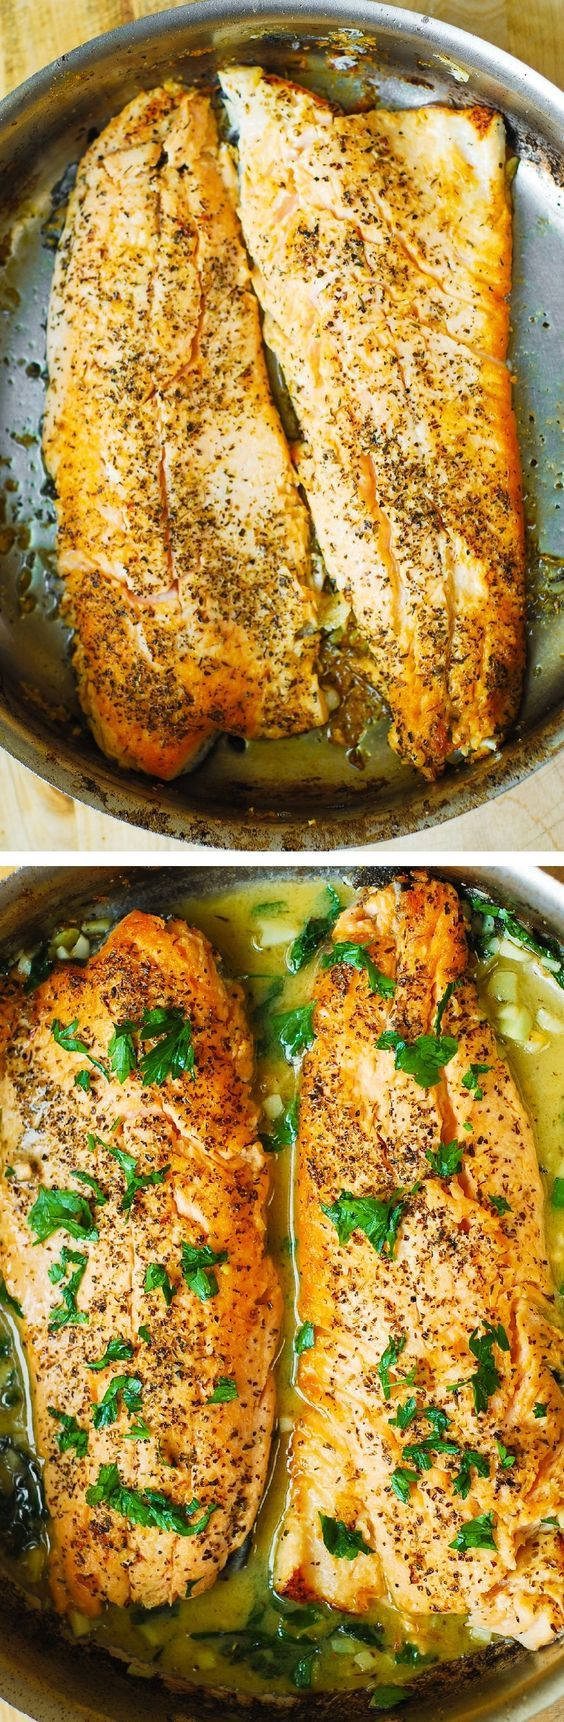 Trout cooked on the stove-top with Garlic Lemon Butter Herb Sauce - 30 minutes…